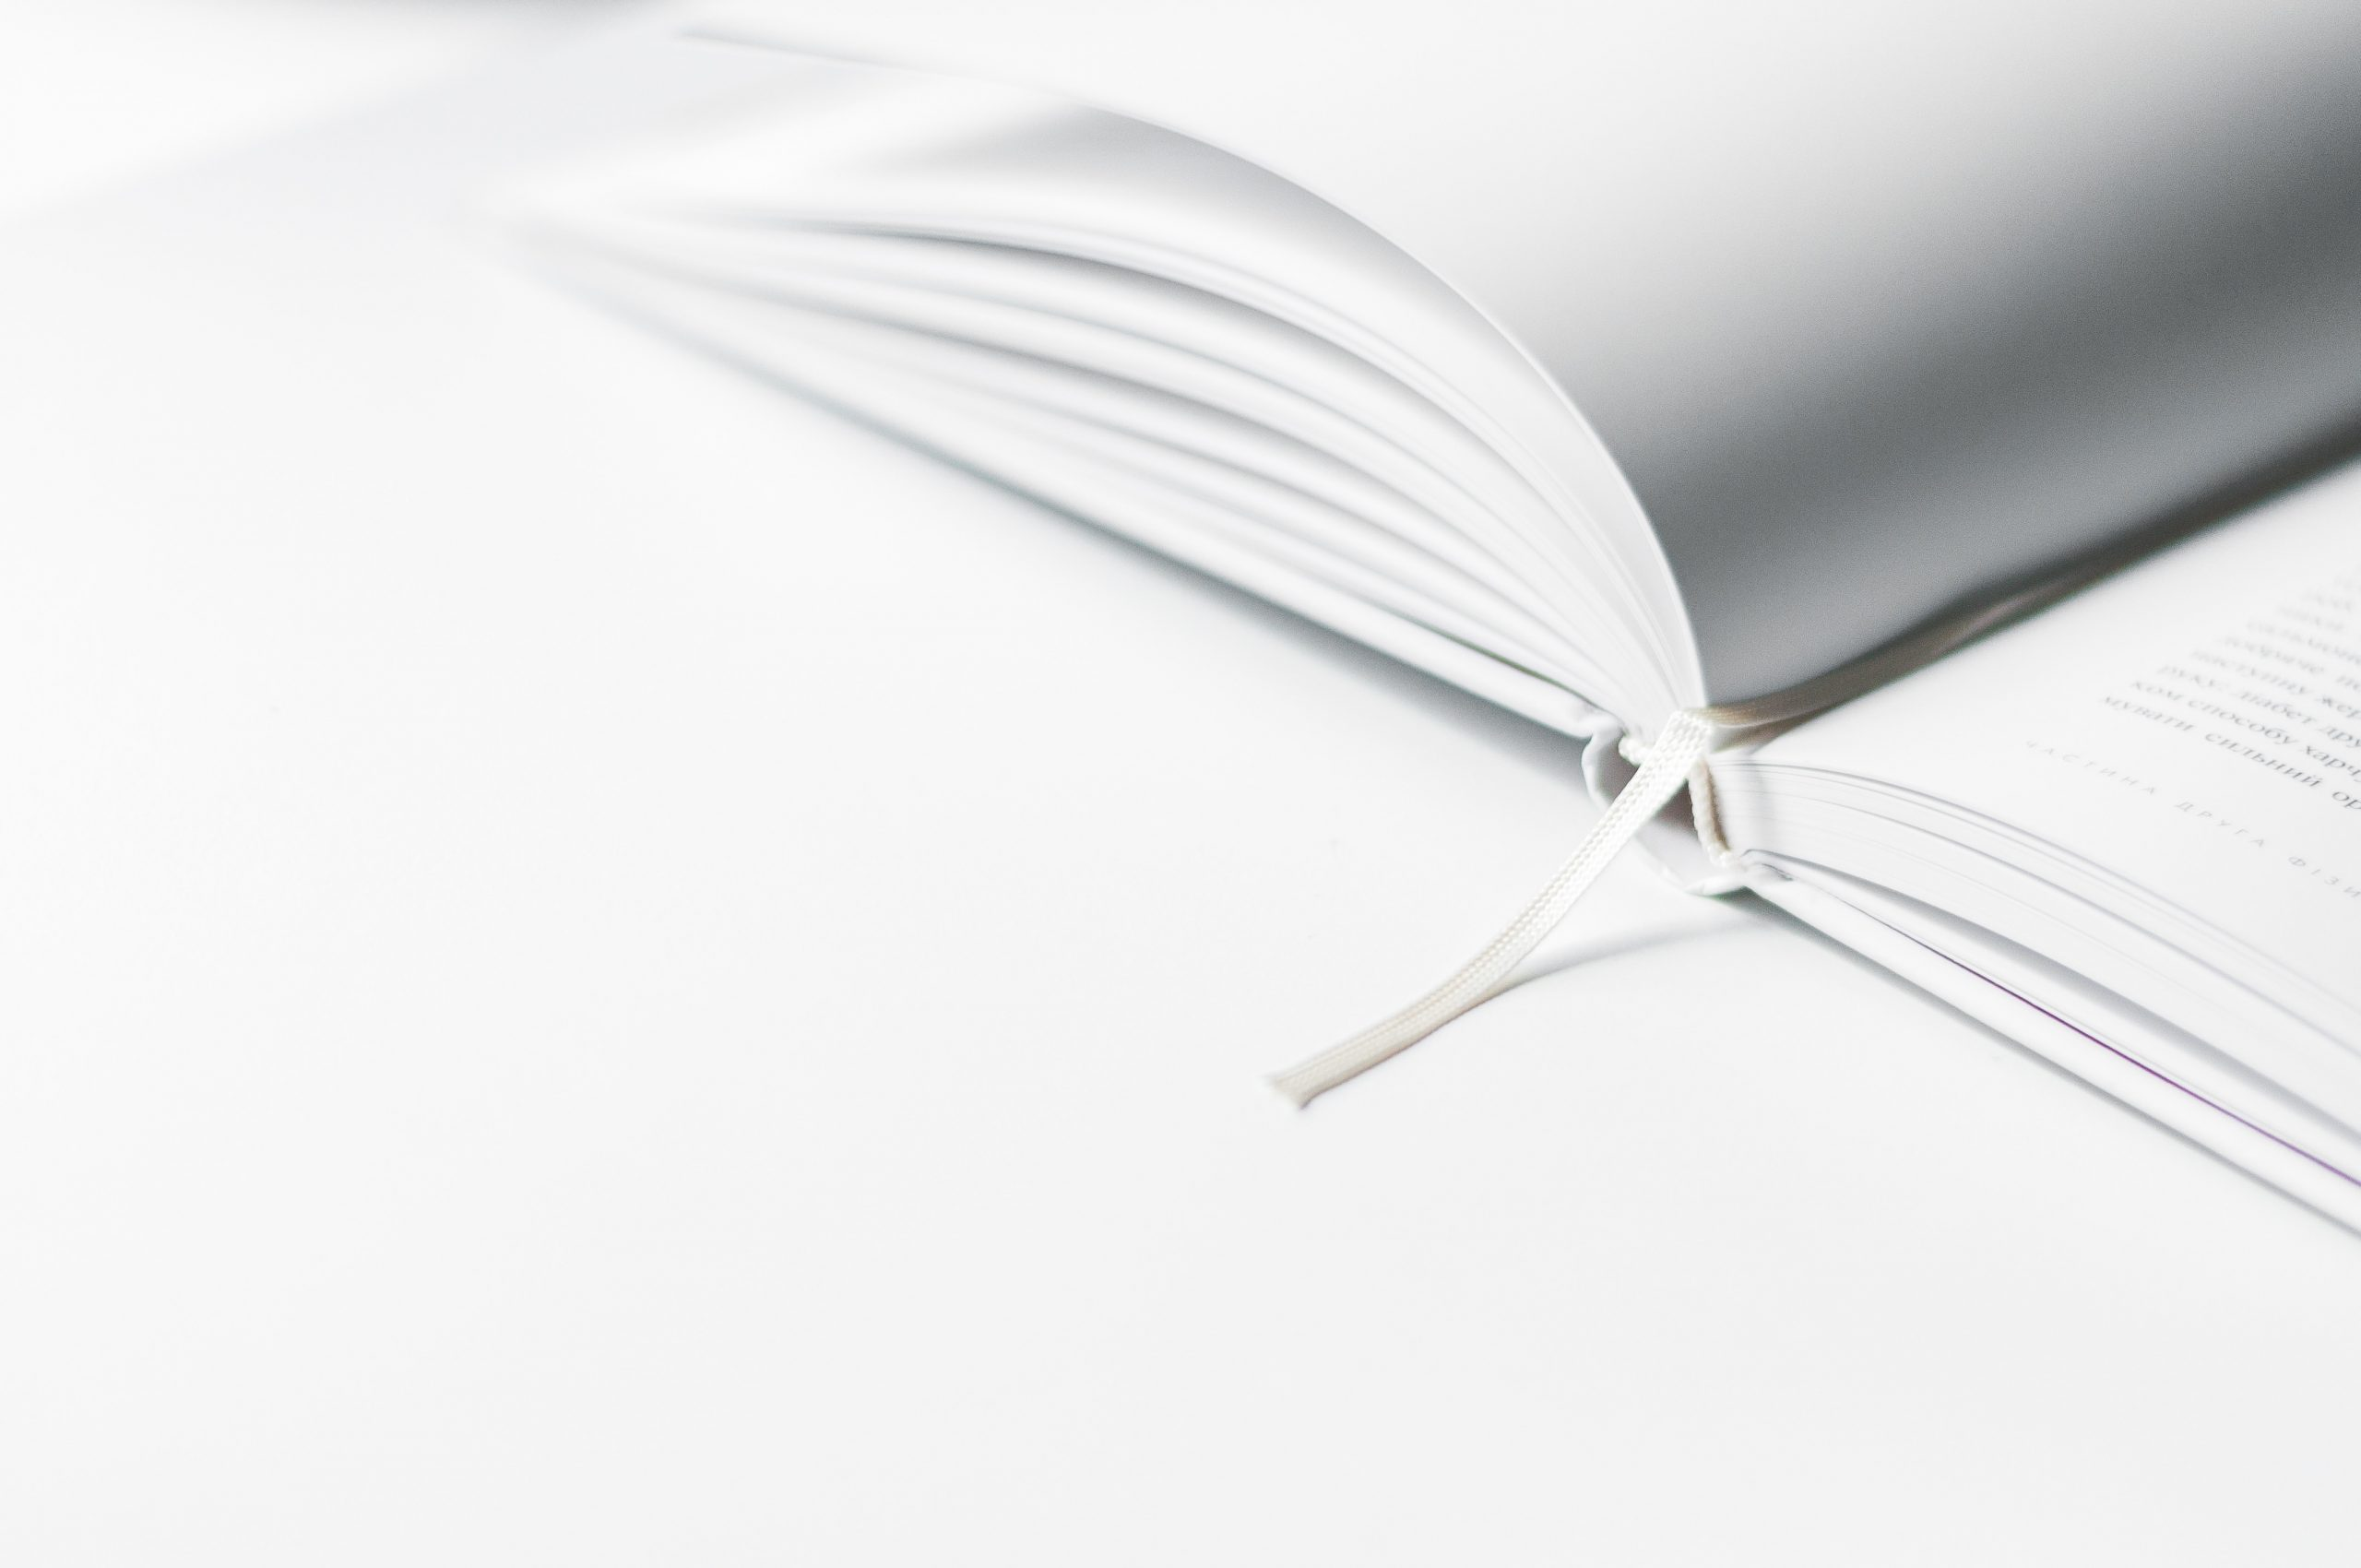 Minimalist Wallpaper White Book Marker On Book Page Wallpaper For You The Best Wallpaper For Desktop Mobile